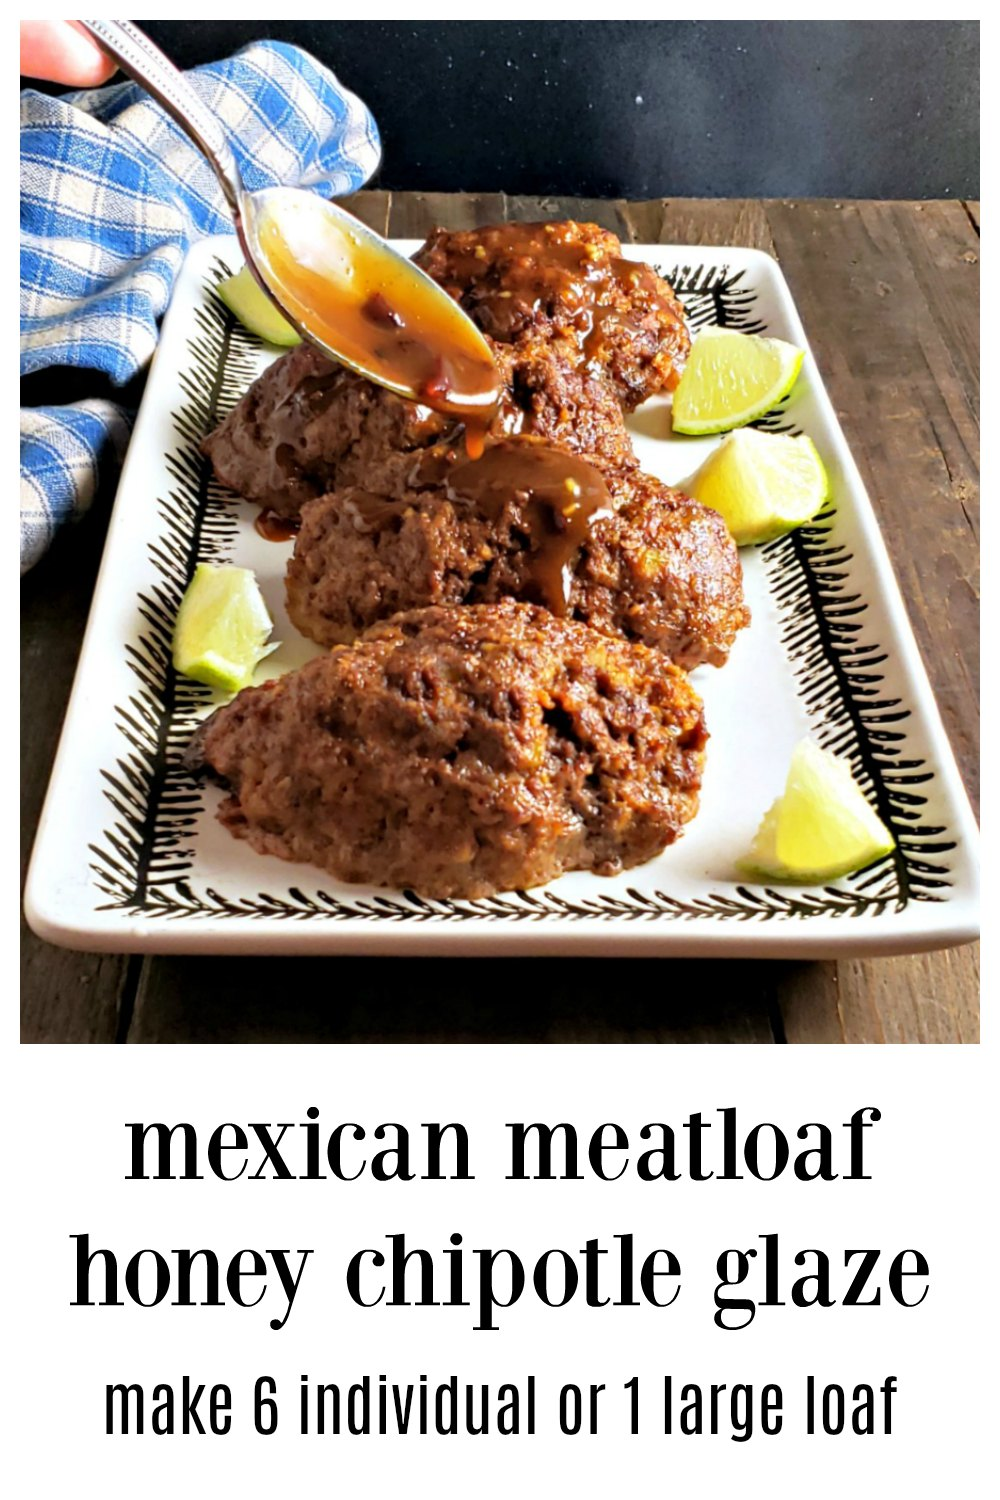 Mexican Meatloaf is inspired; such a fun change of pace. The meatloaf is flavorful and family-friendly and the Honey Chipotle Glaze takes it over the top! Best of both worlds. Baked in individual servings, it's under 30 minutes to the table. Can be made in one large loaf, too. Make ahead and/or freeze and bake, too. #Meatloaf #MexicanMeatoaf #GroundBeefRecipe #MexicanRecipe